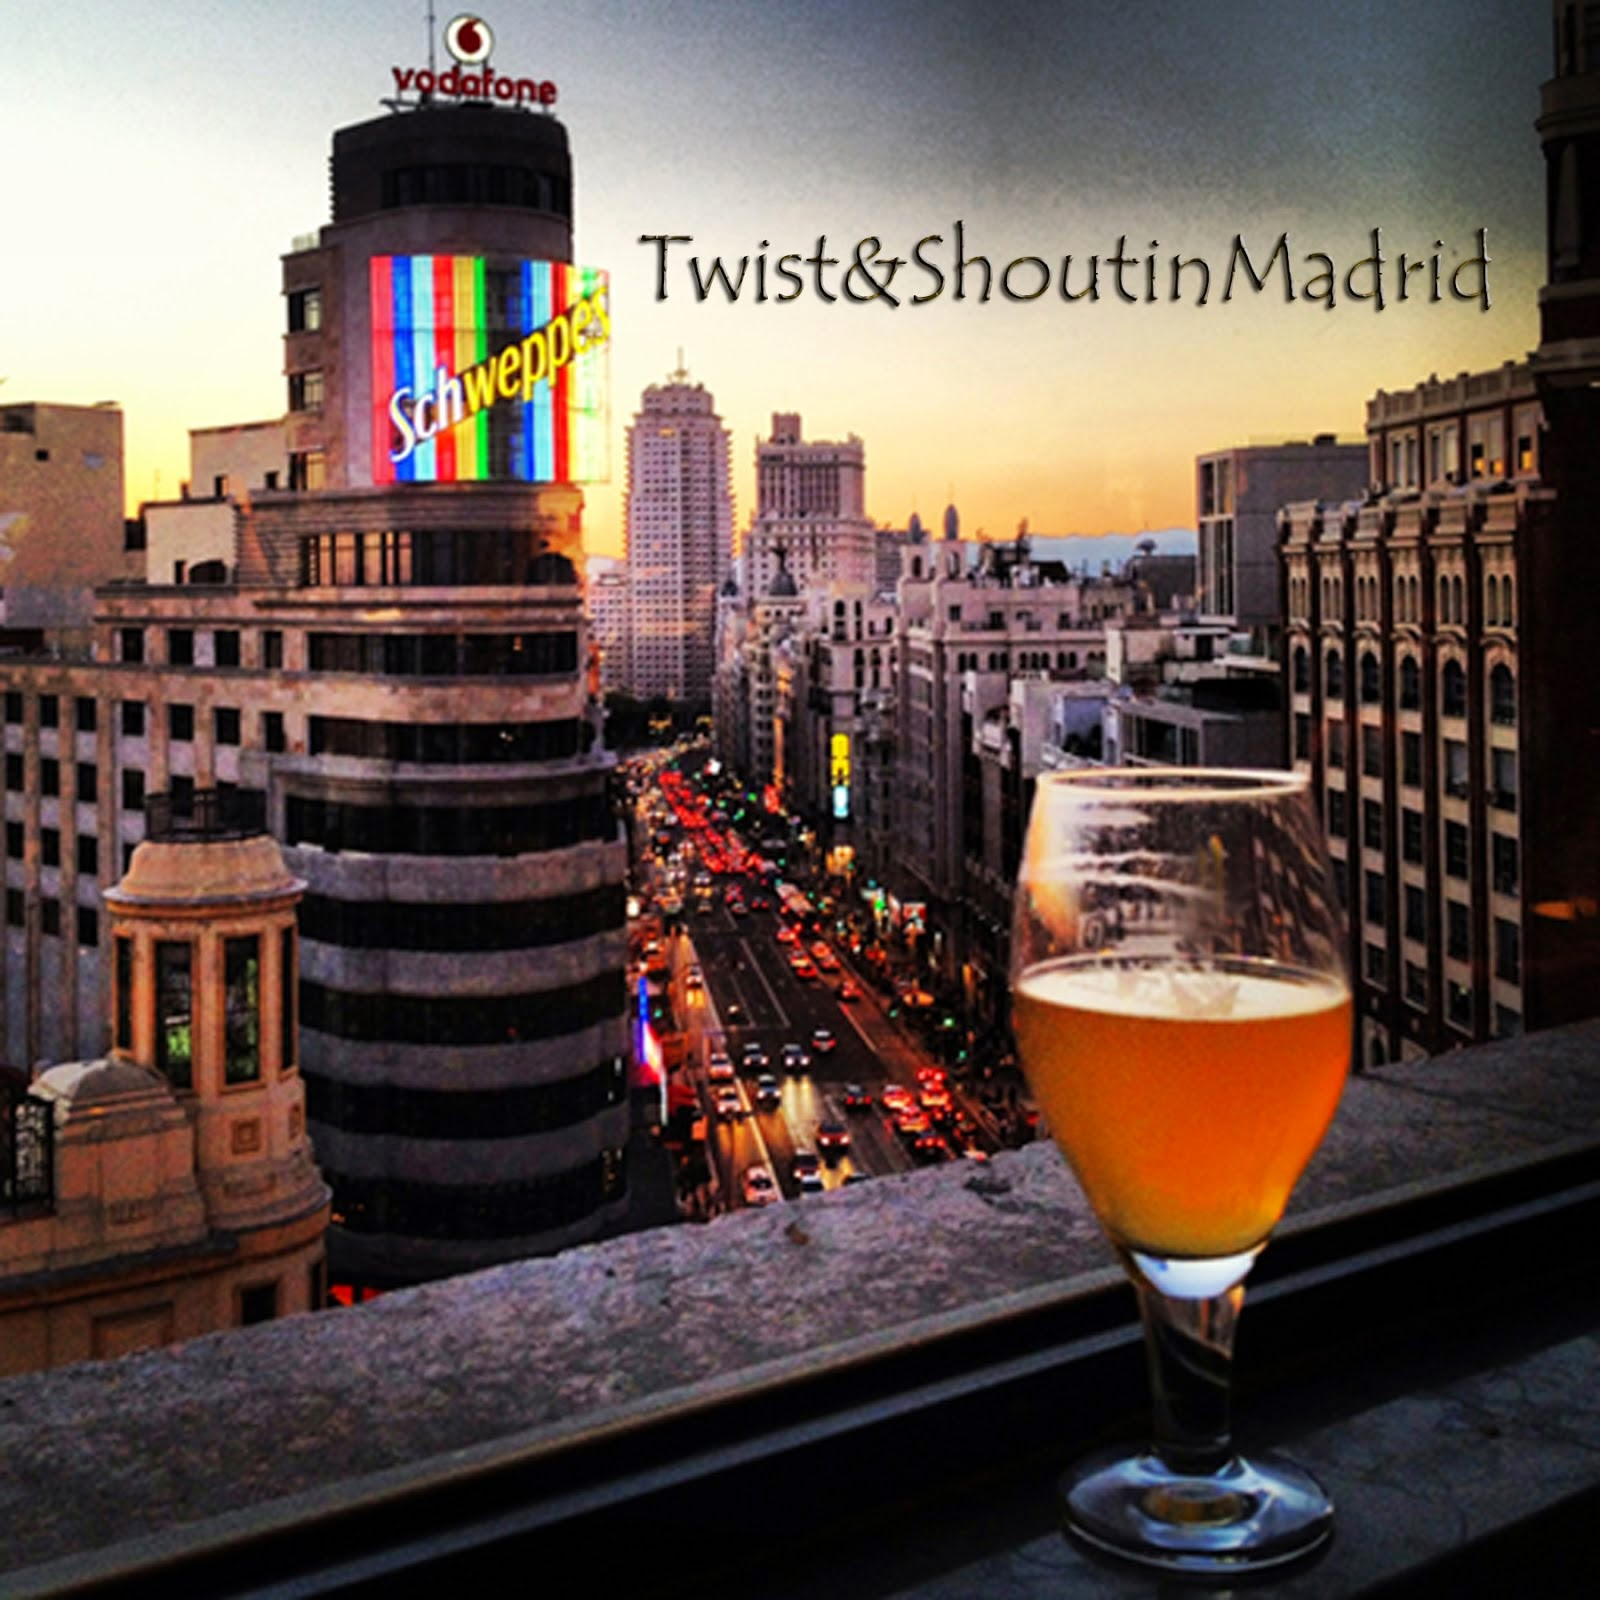 Twist&ShoutinMadrid